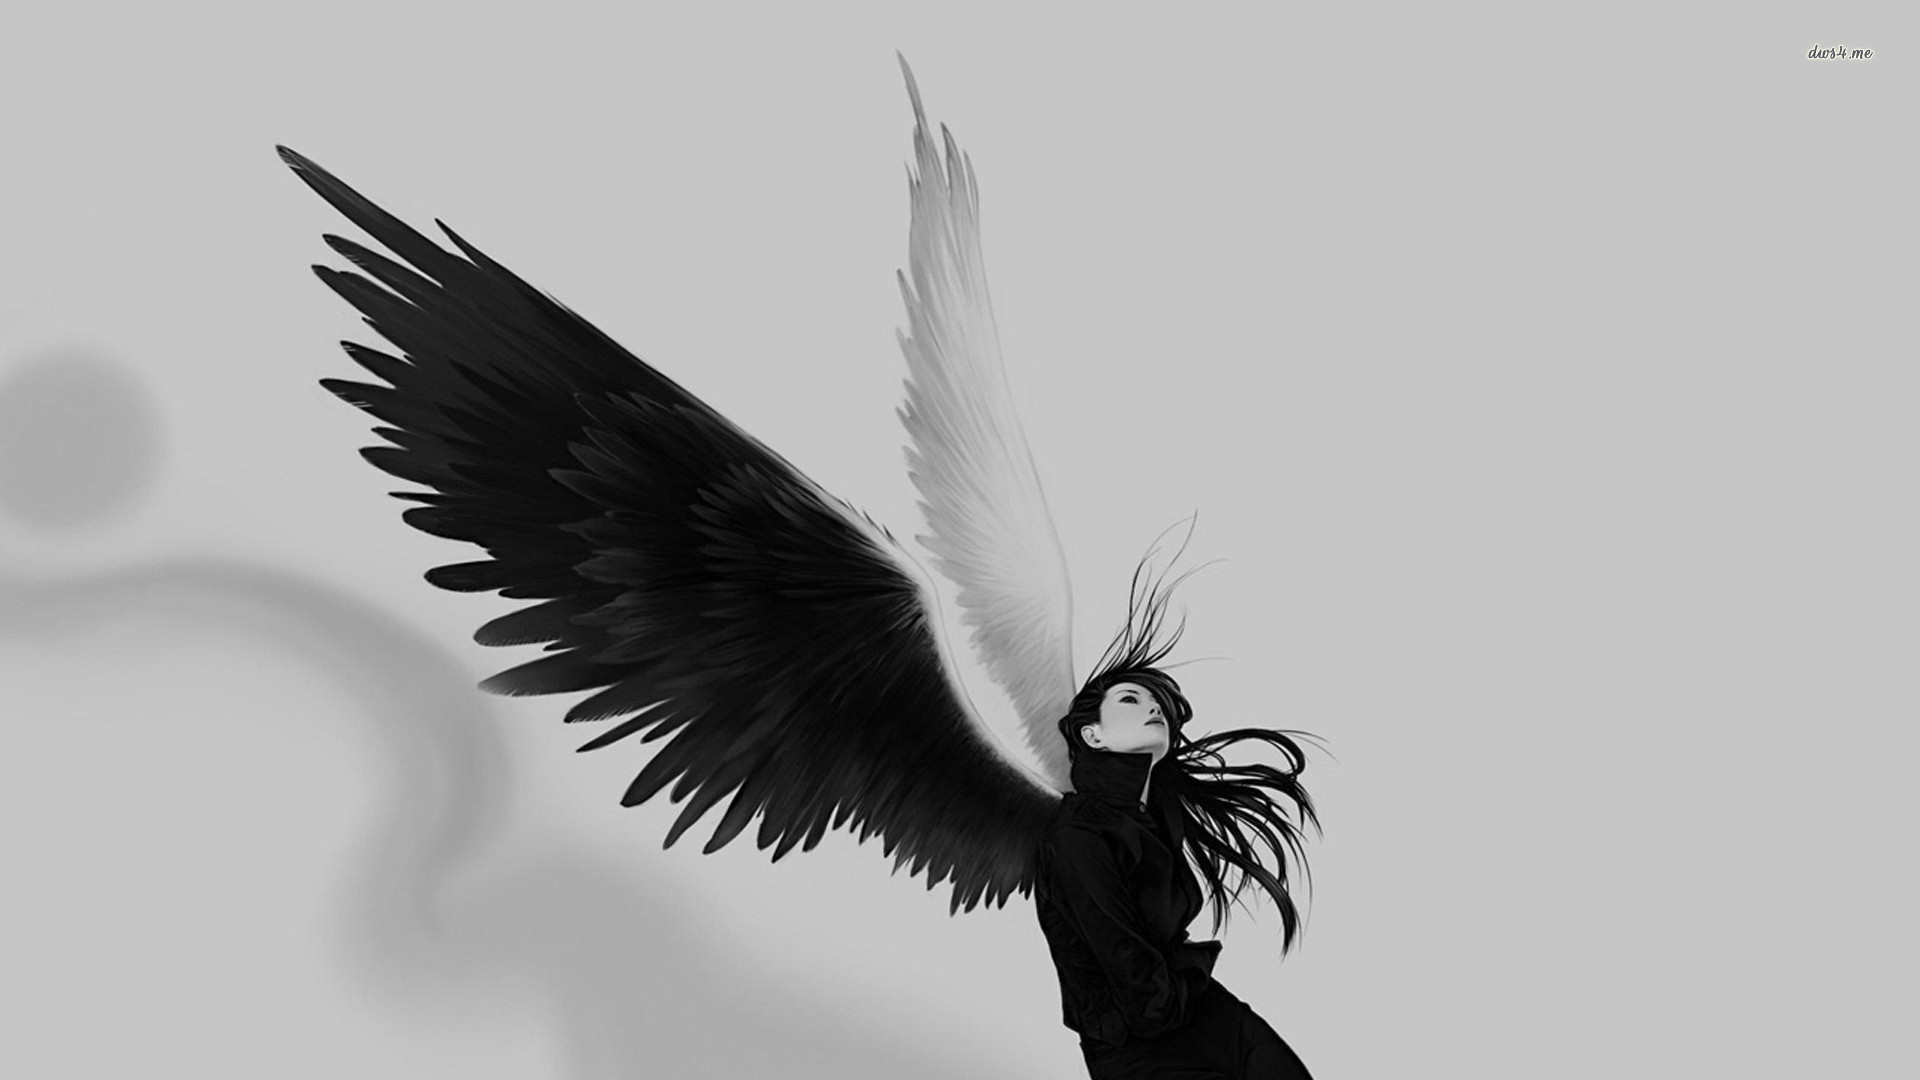 angel wings wallpaper 70